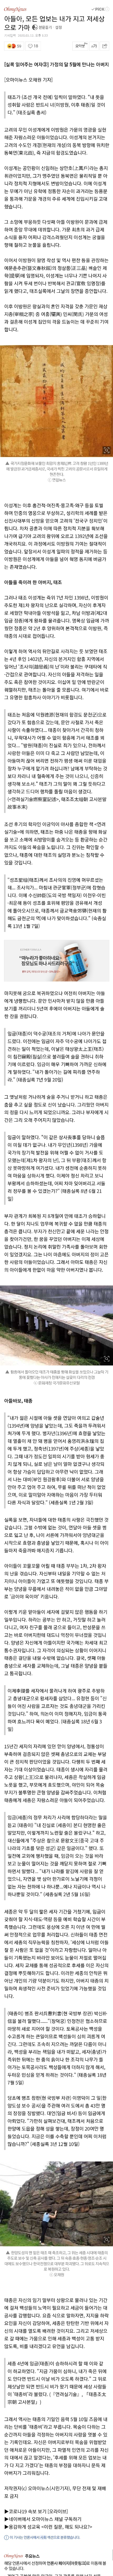 Screenshot_20200512-192633_NAVER.jpg